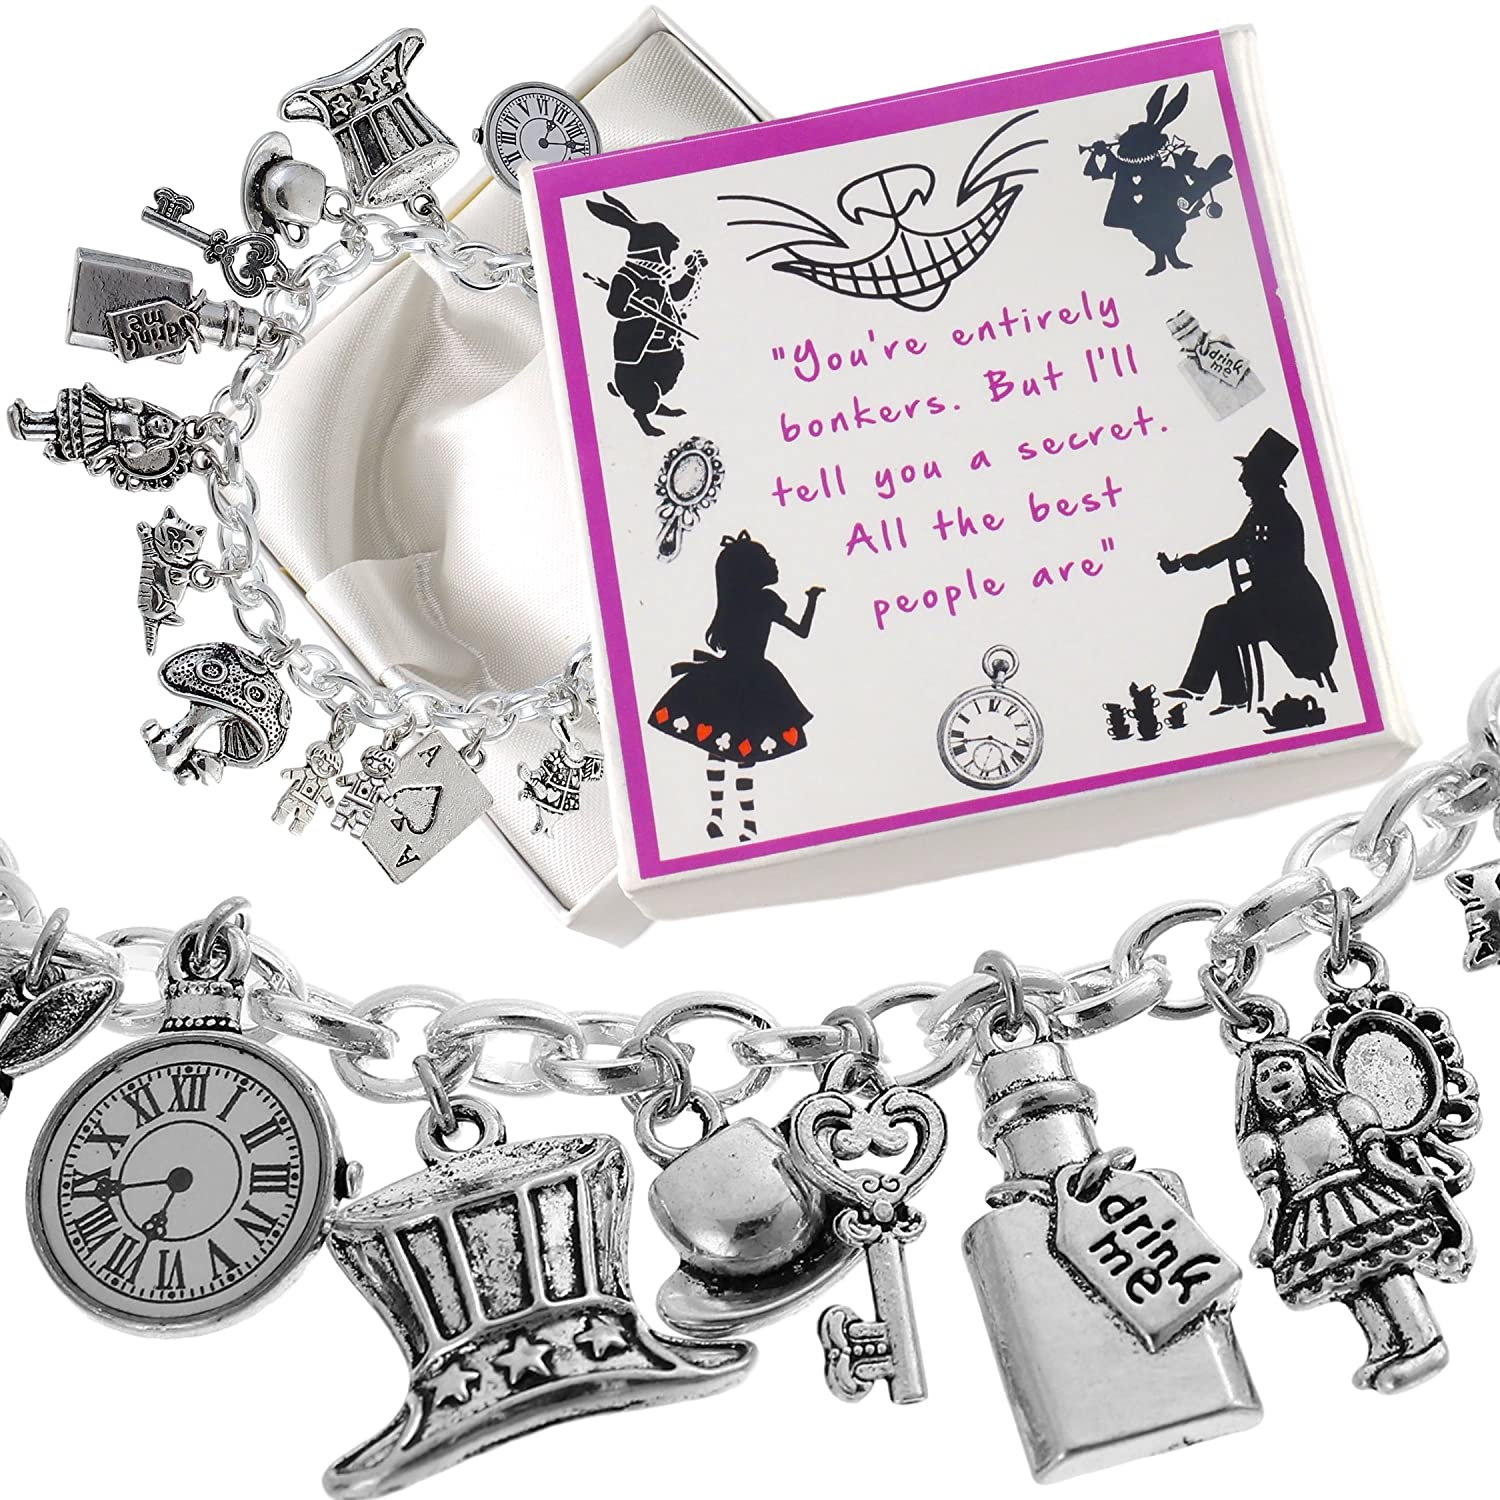 Alice in Wonderland Charm Bracelet with Presentation Gift Box Ladies Girls Charm Buddy Alice Bracelet No.1/.